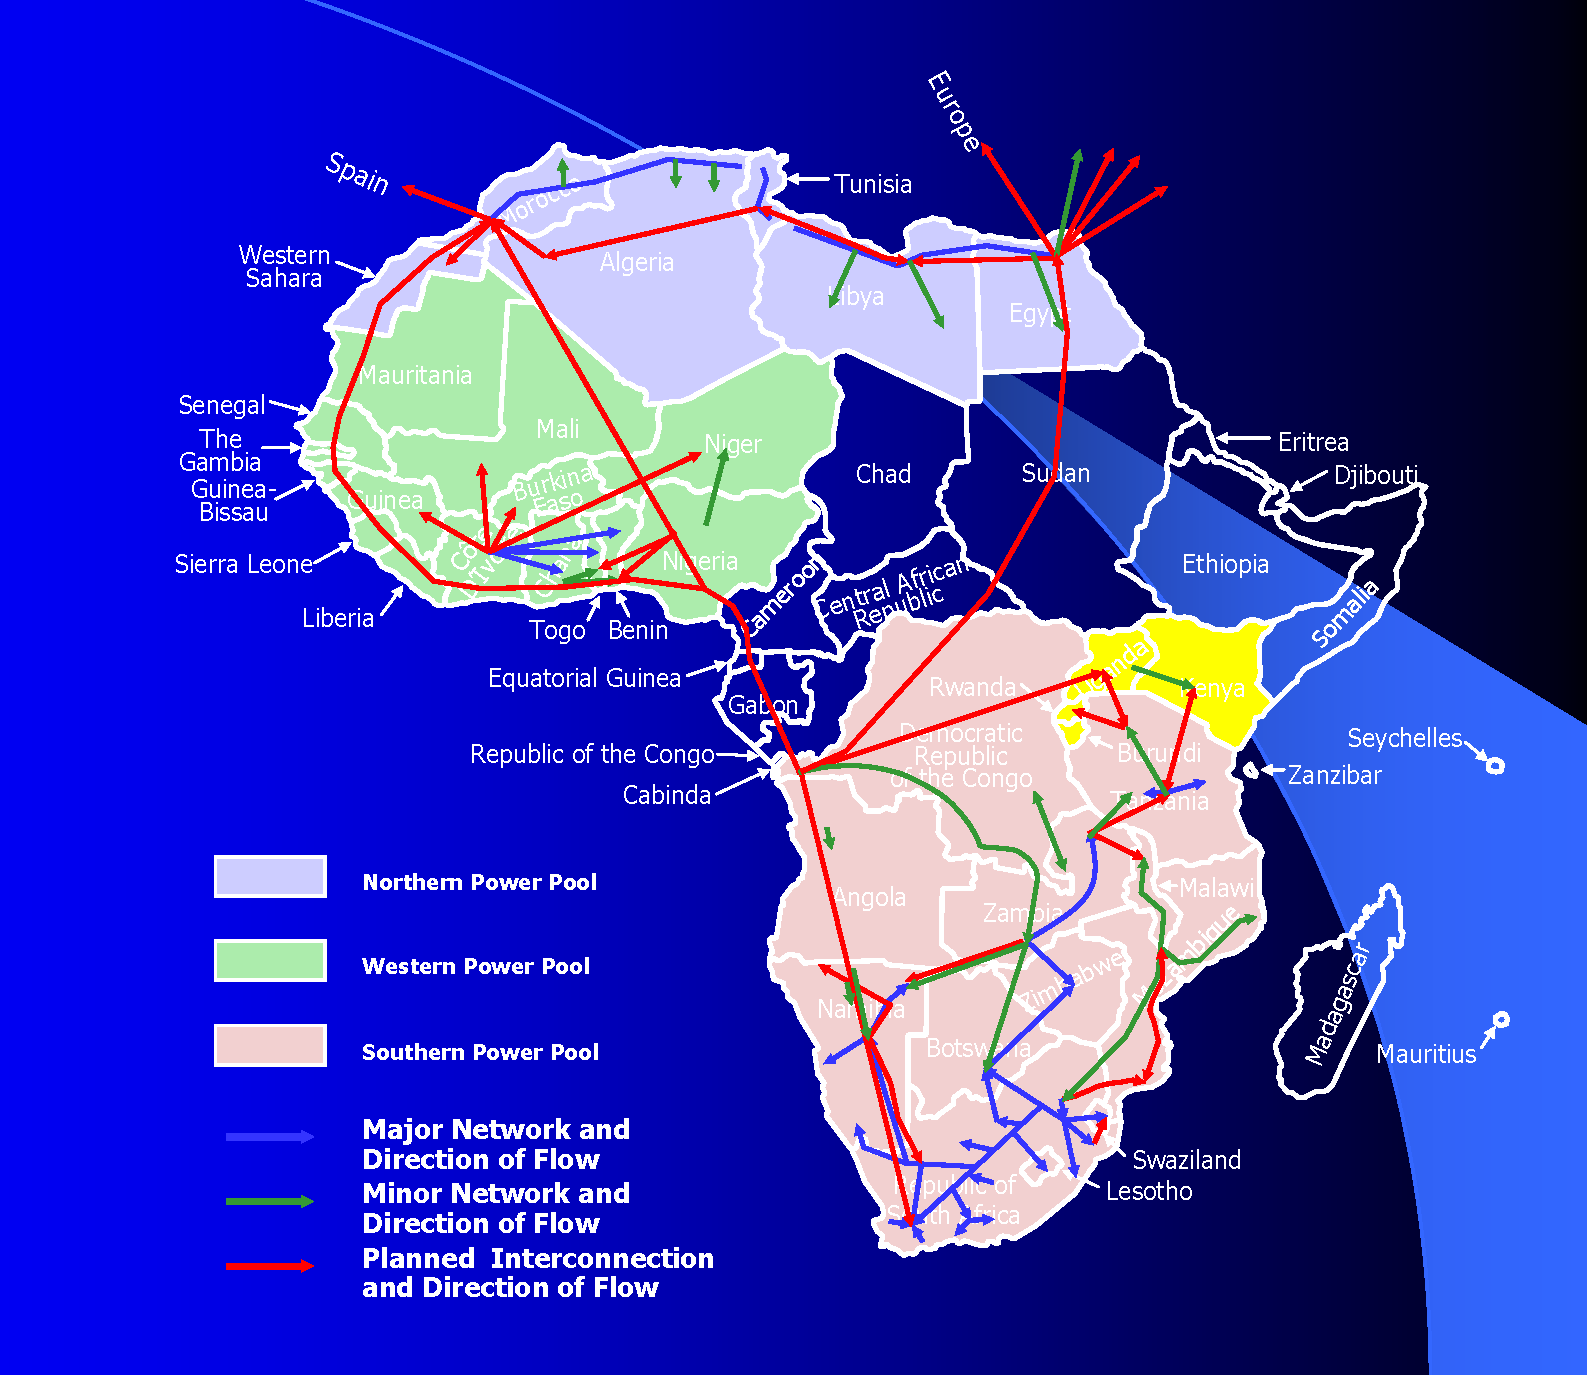 Existing and Planned Power Pool Connections in Africa